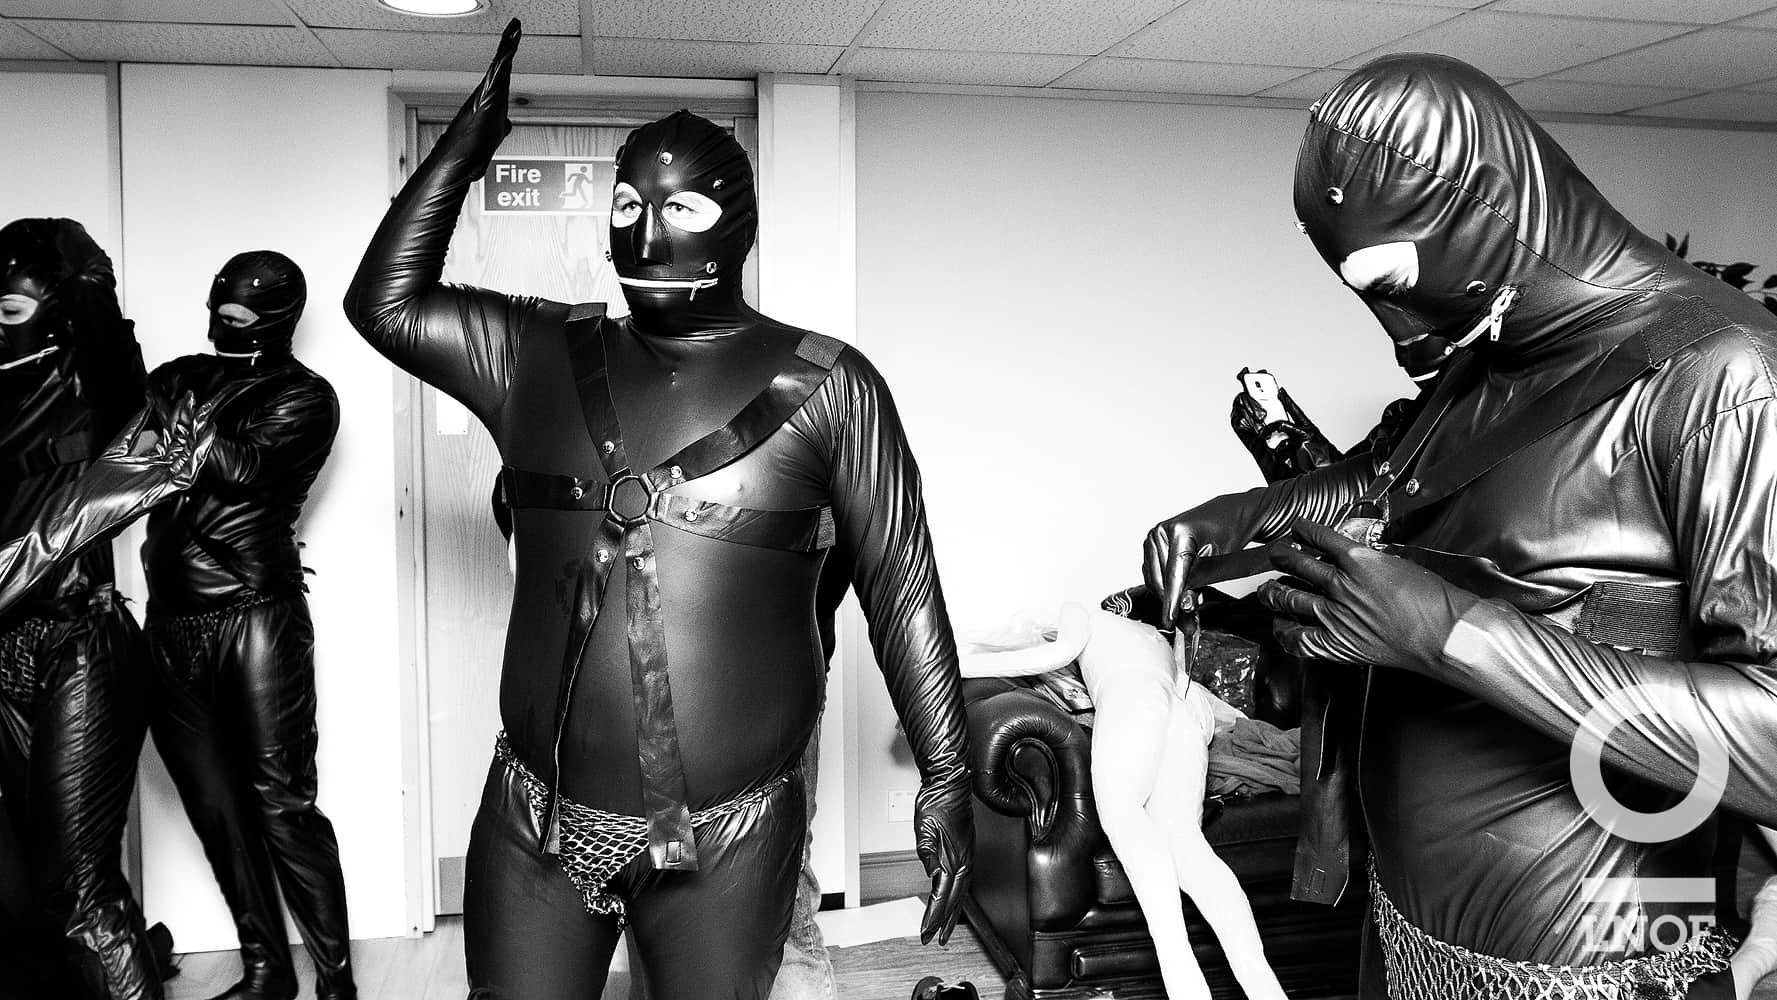 Staff getting dressed up in our very own gimp outfits for their 15 seconds of fame